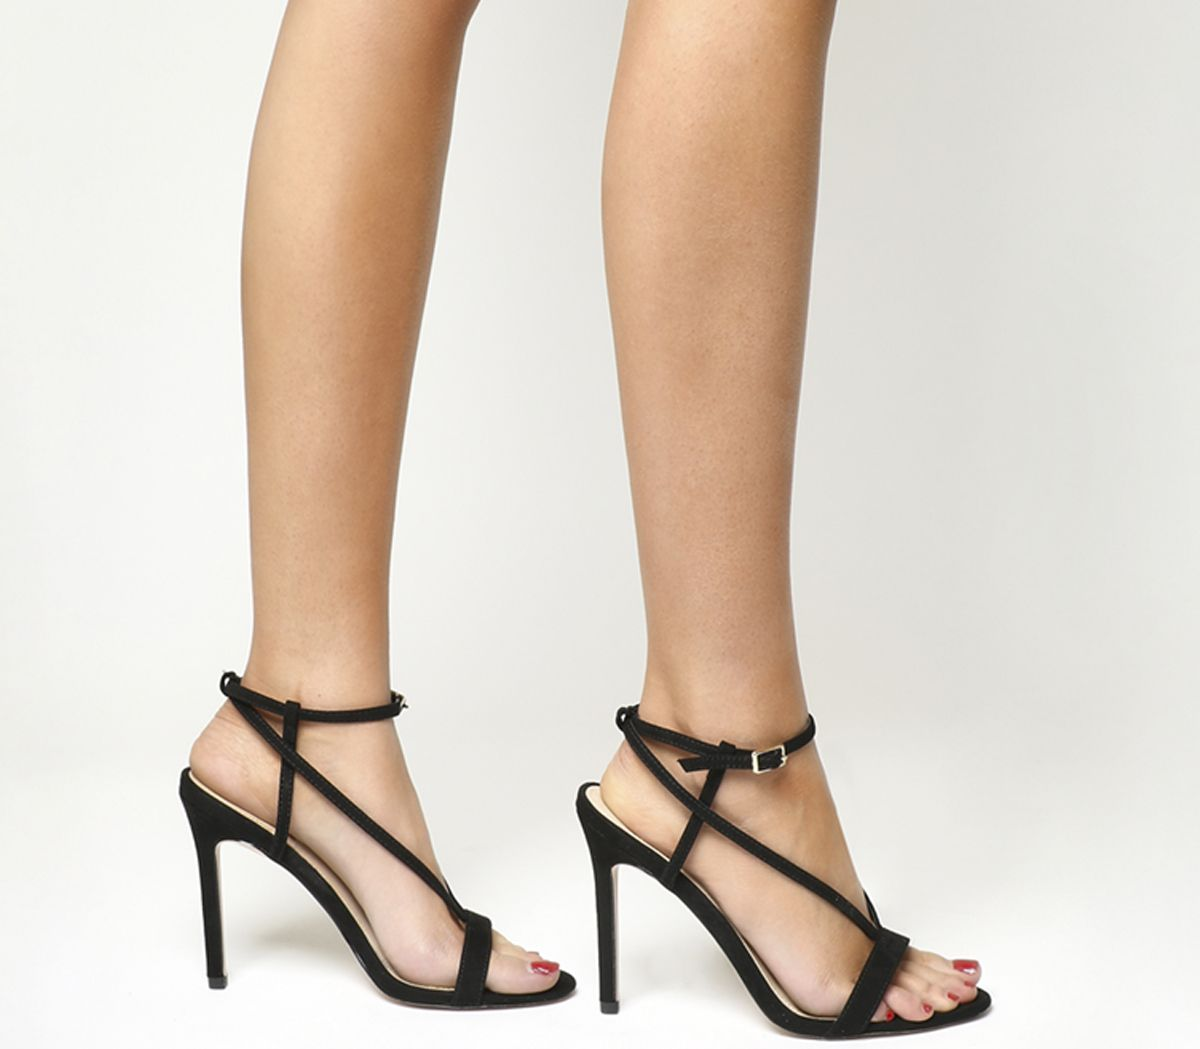 d6804c600db Office Heartless Strappy Sandals Black - High Heels